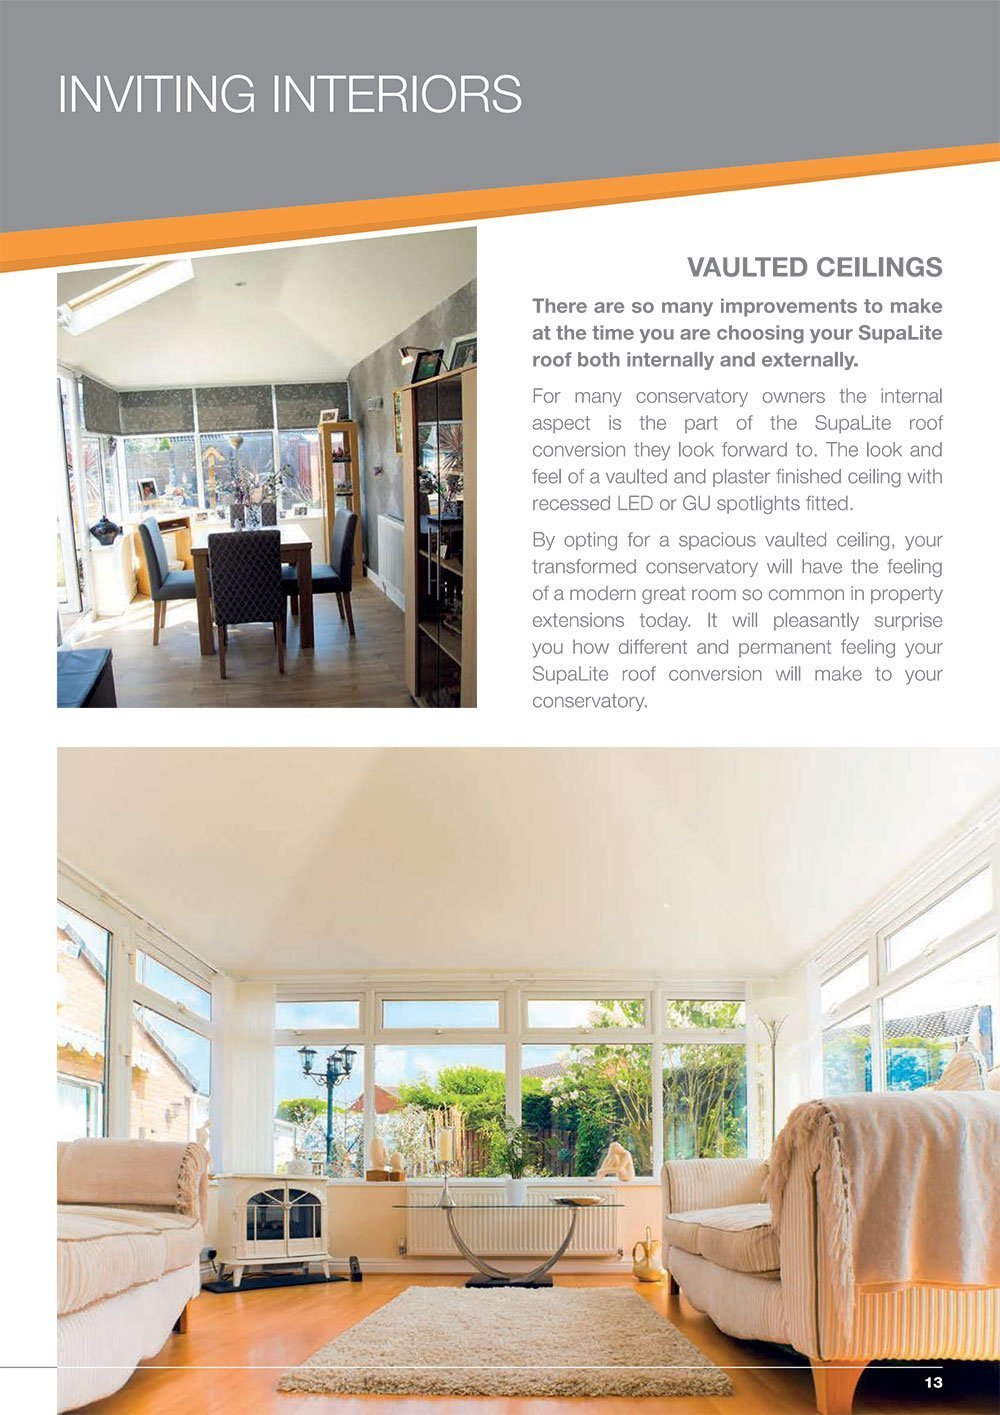 Supalite offers high quality, lightweight tiled roofing for your conservatory